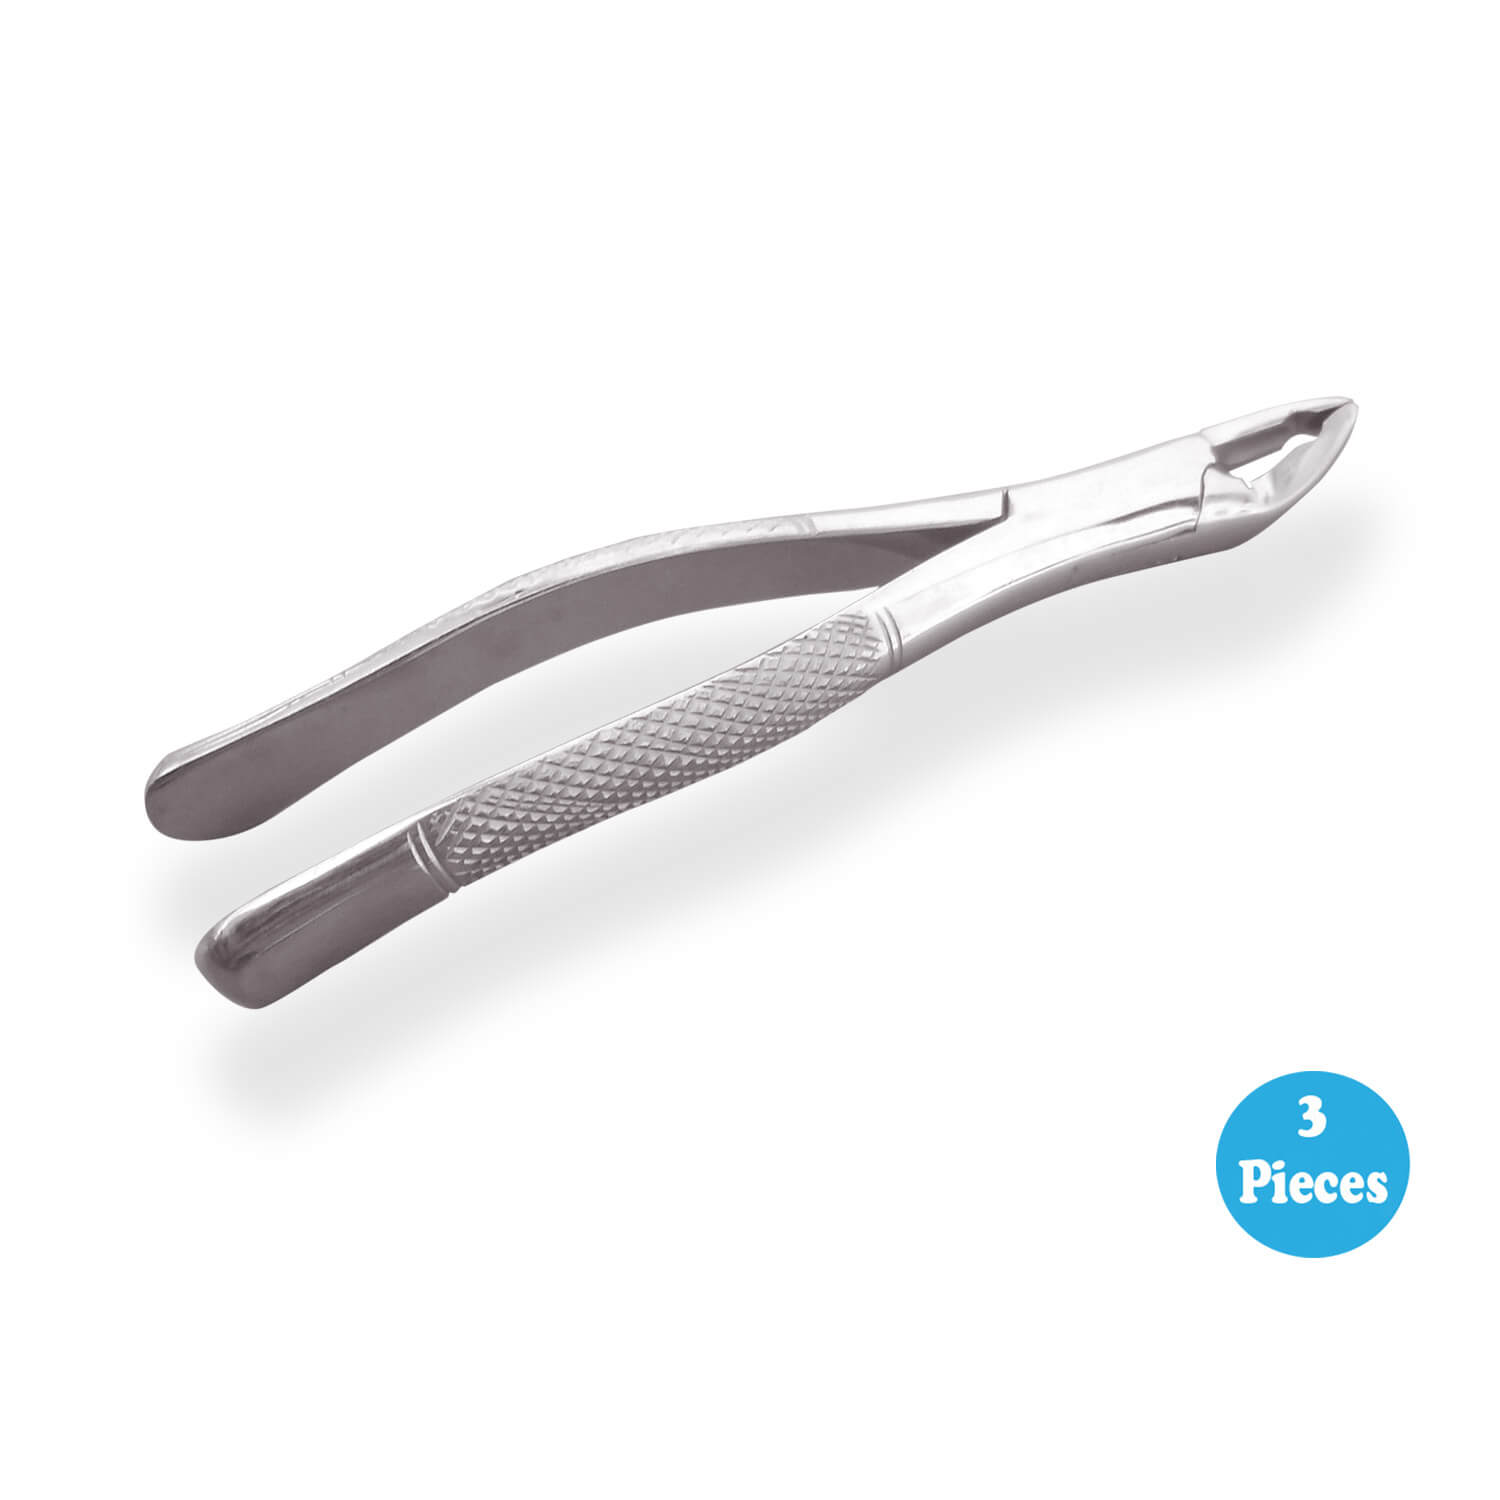 3 Extracting forceps Dental Surgical #150As